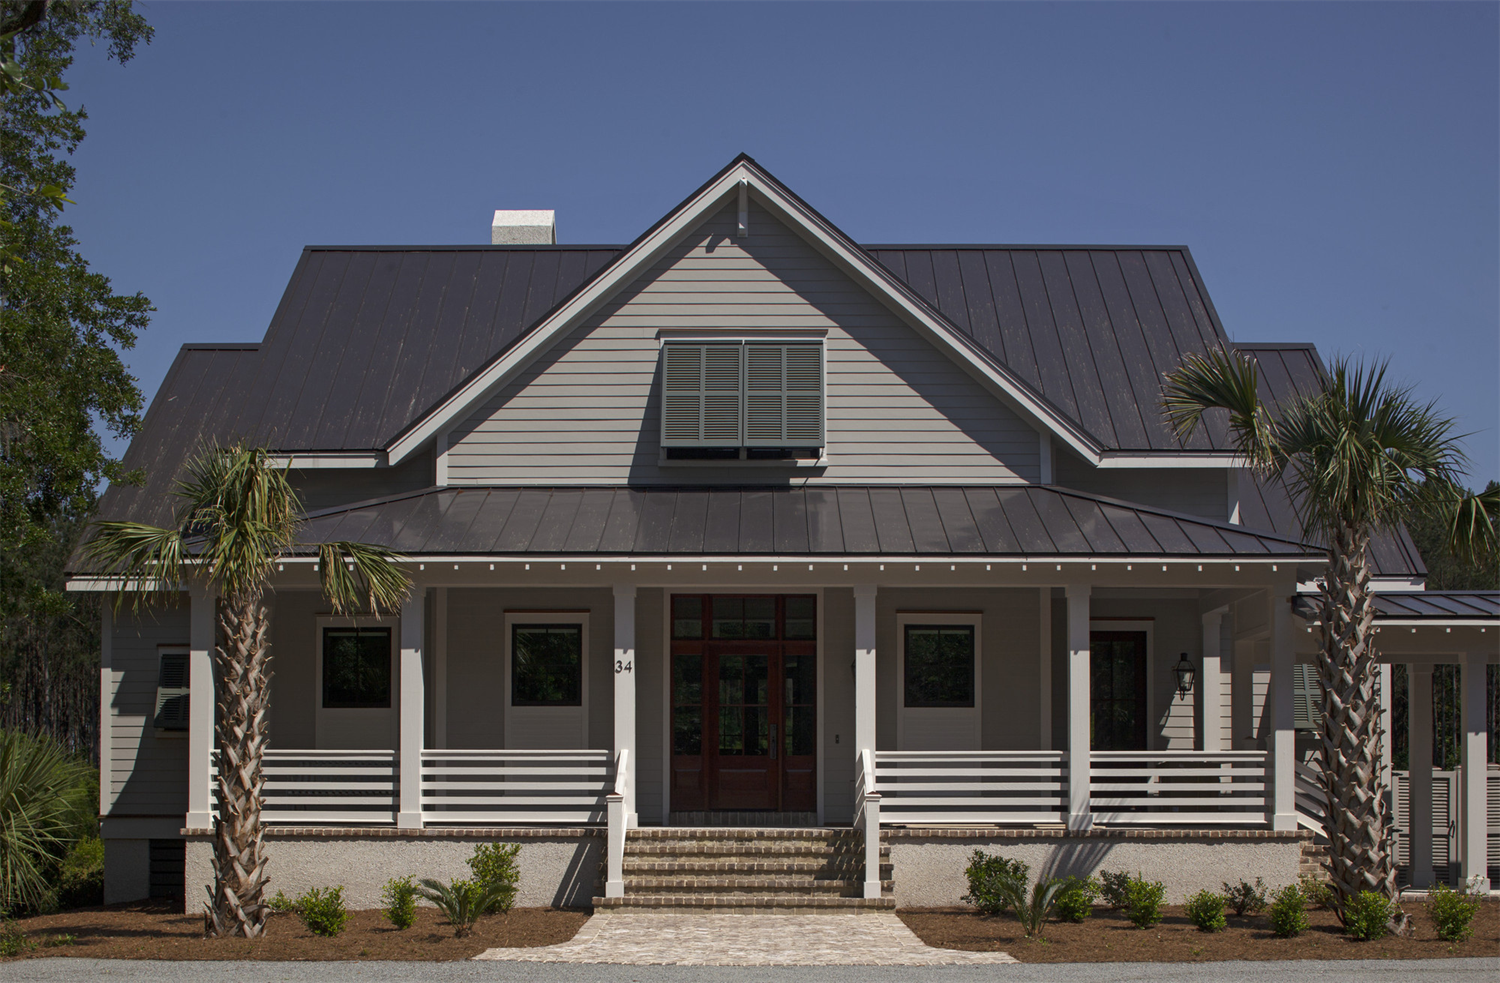 Hardy Board Siding >> James Hardie Siding Products-WI | Weekes Forest Products